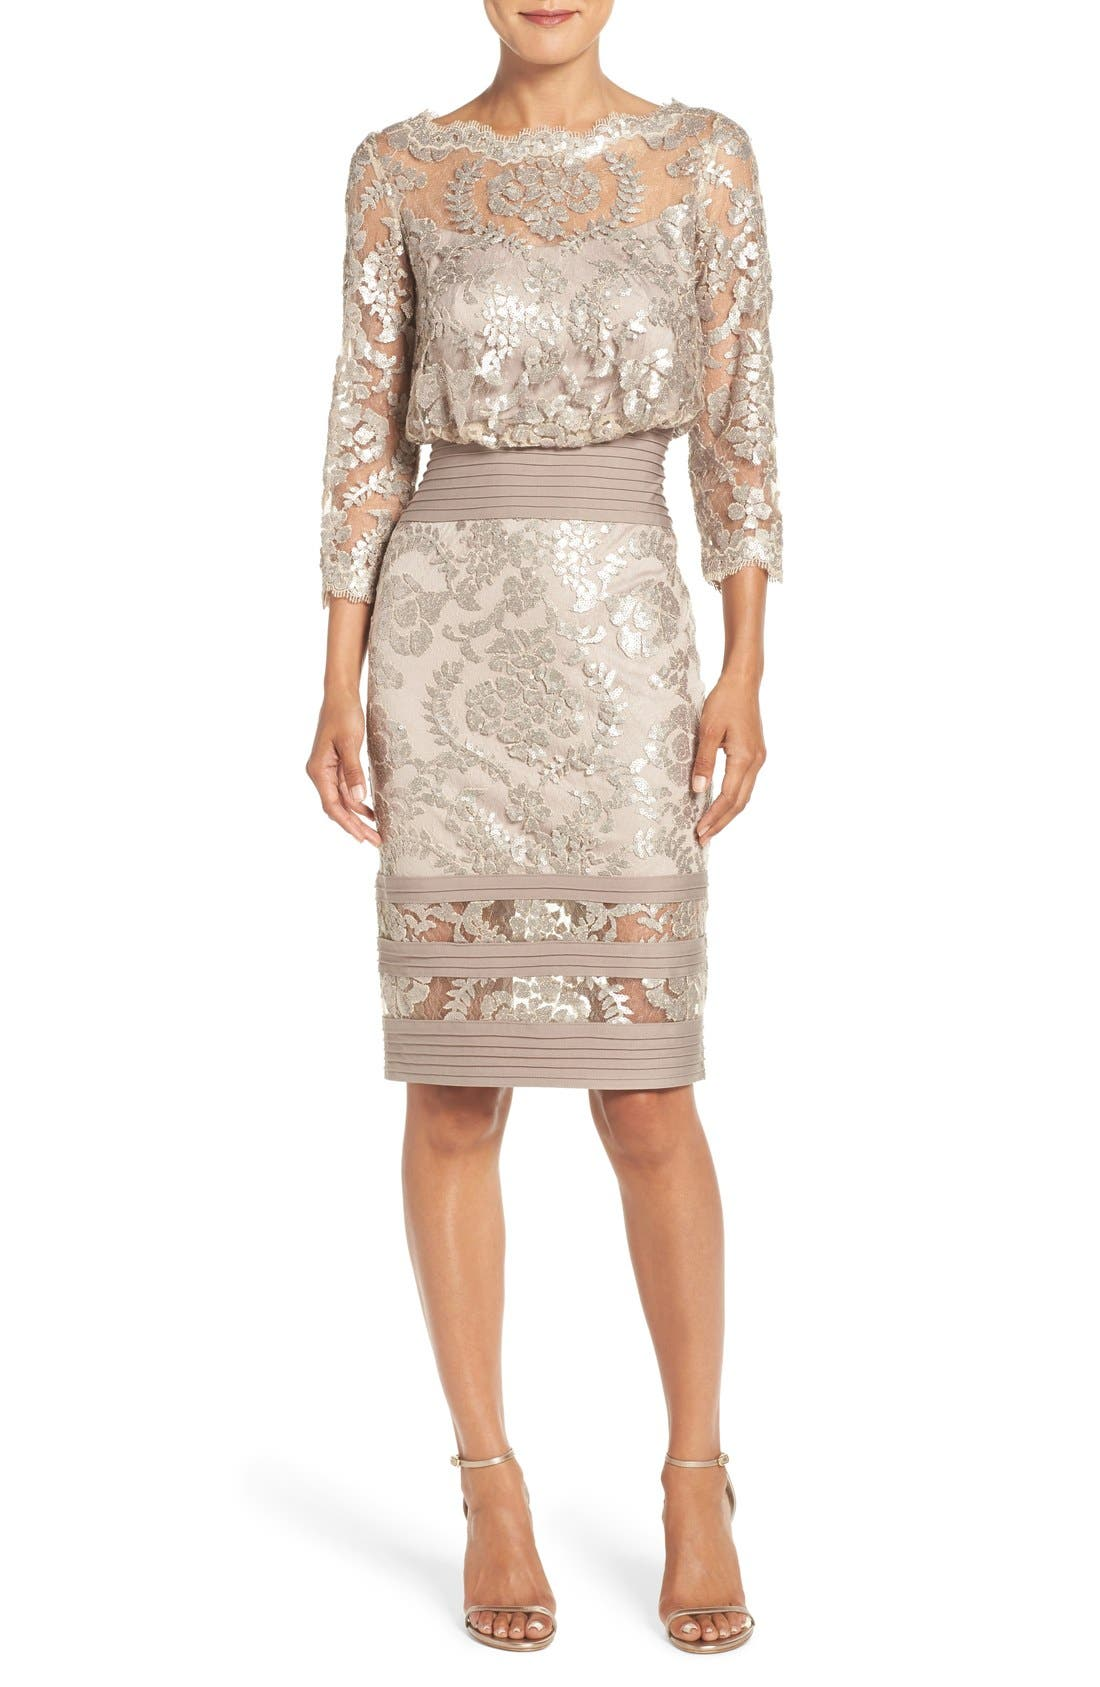 Alternate Image 1 Selected - Tadashi Shoji Sequin Lace Blouson Dress